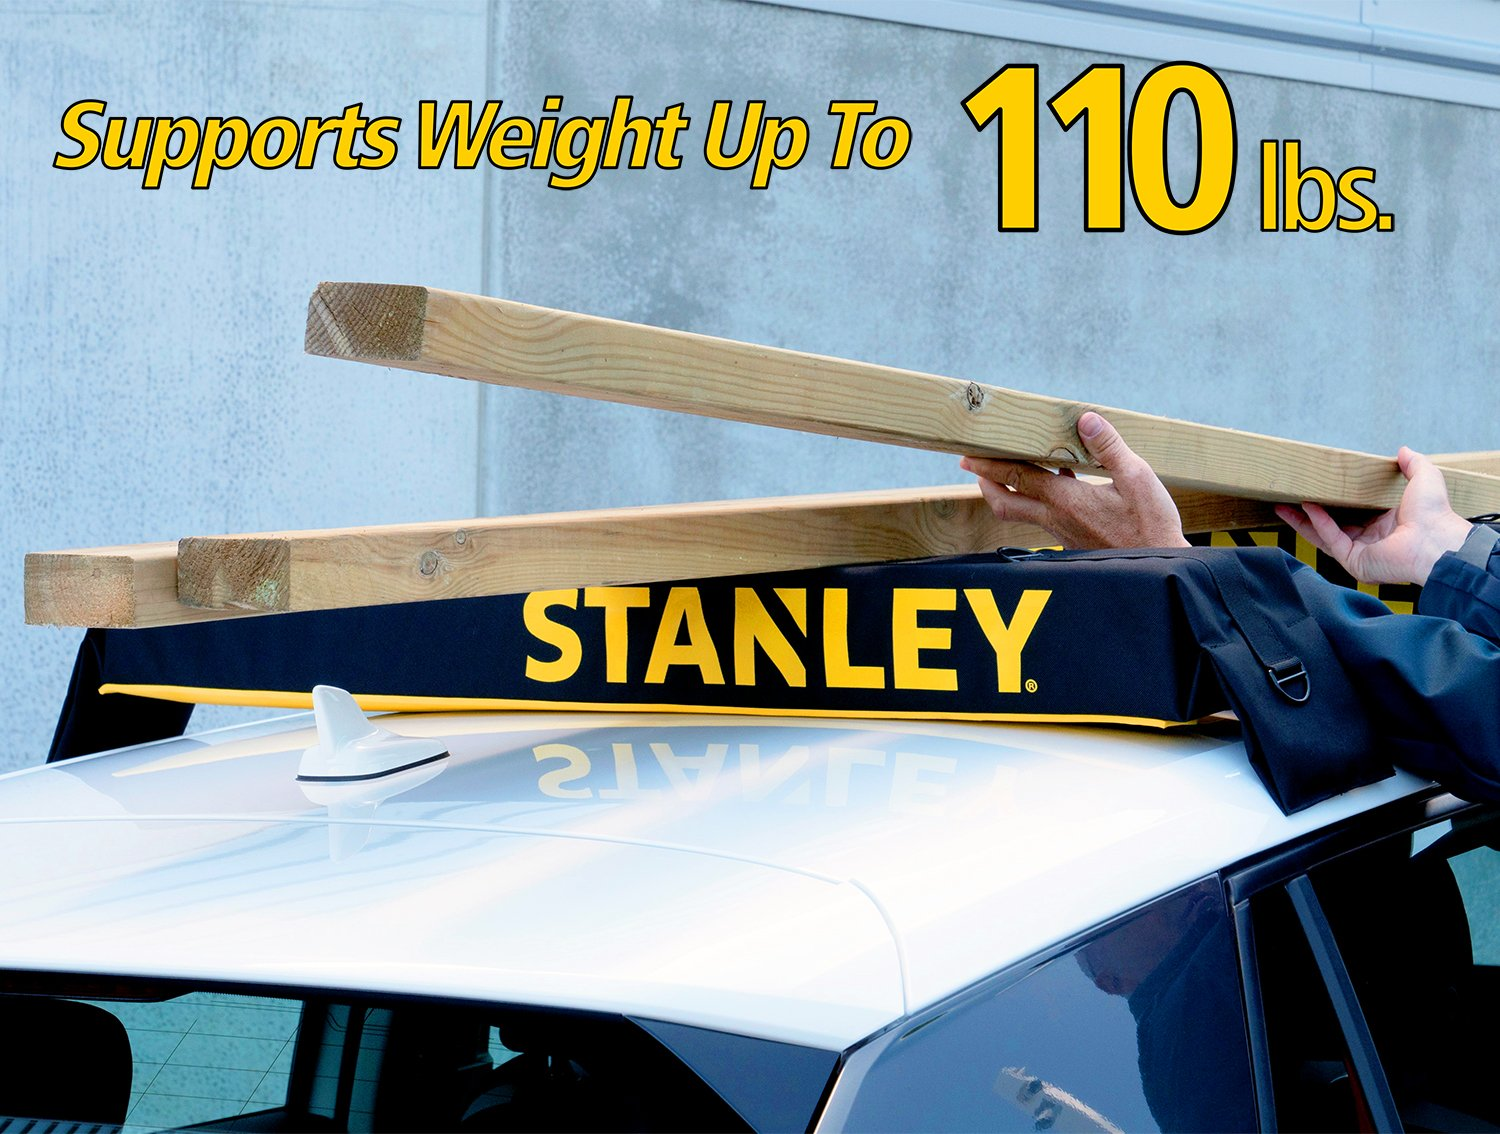 Stanley Universal Car Roof Rack Pad /& Luggage Carrier System Anti Vibration Great for Transporting Kayak SUP Surfboard Lumber /& Other Long Items Includes 2 Heavy Duty Tie Down Straps